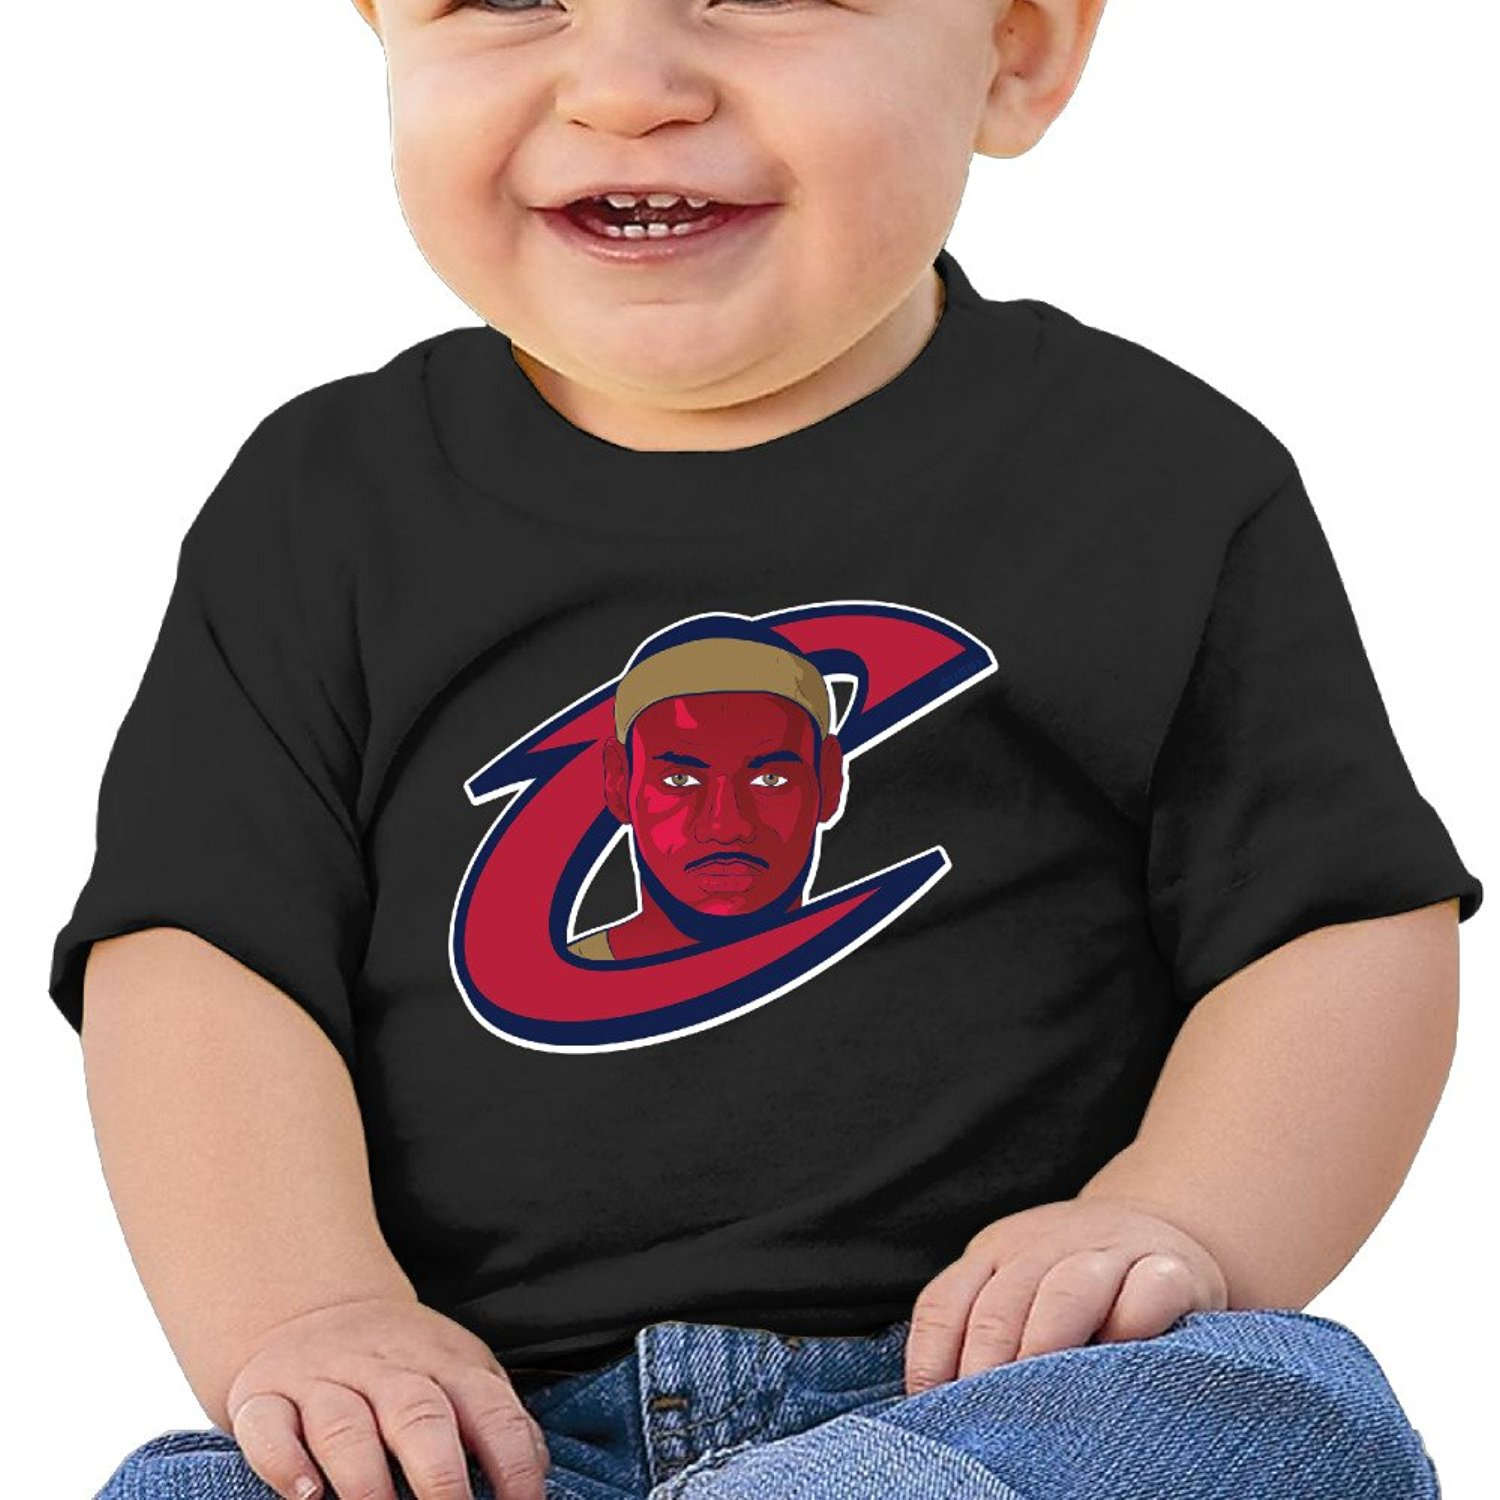 8ca6019f1227 Get Quotations · MDSHOP Unisex-Baby   Toddler   Infant Cleveland Cavaliers  Basketball Player LeBron Cotton O-